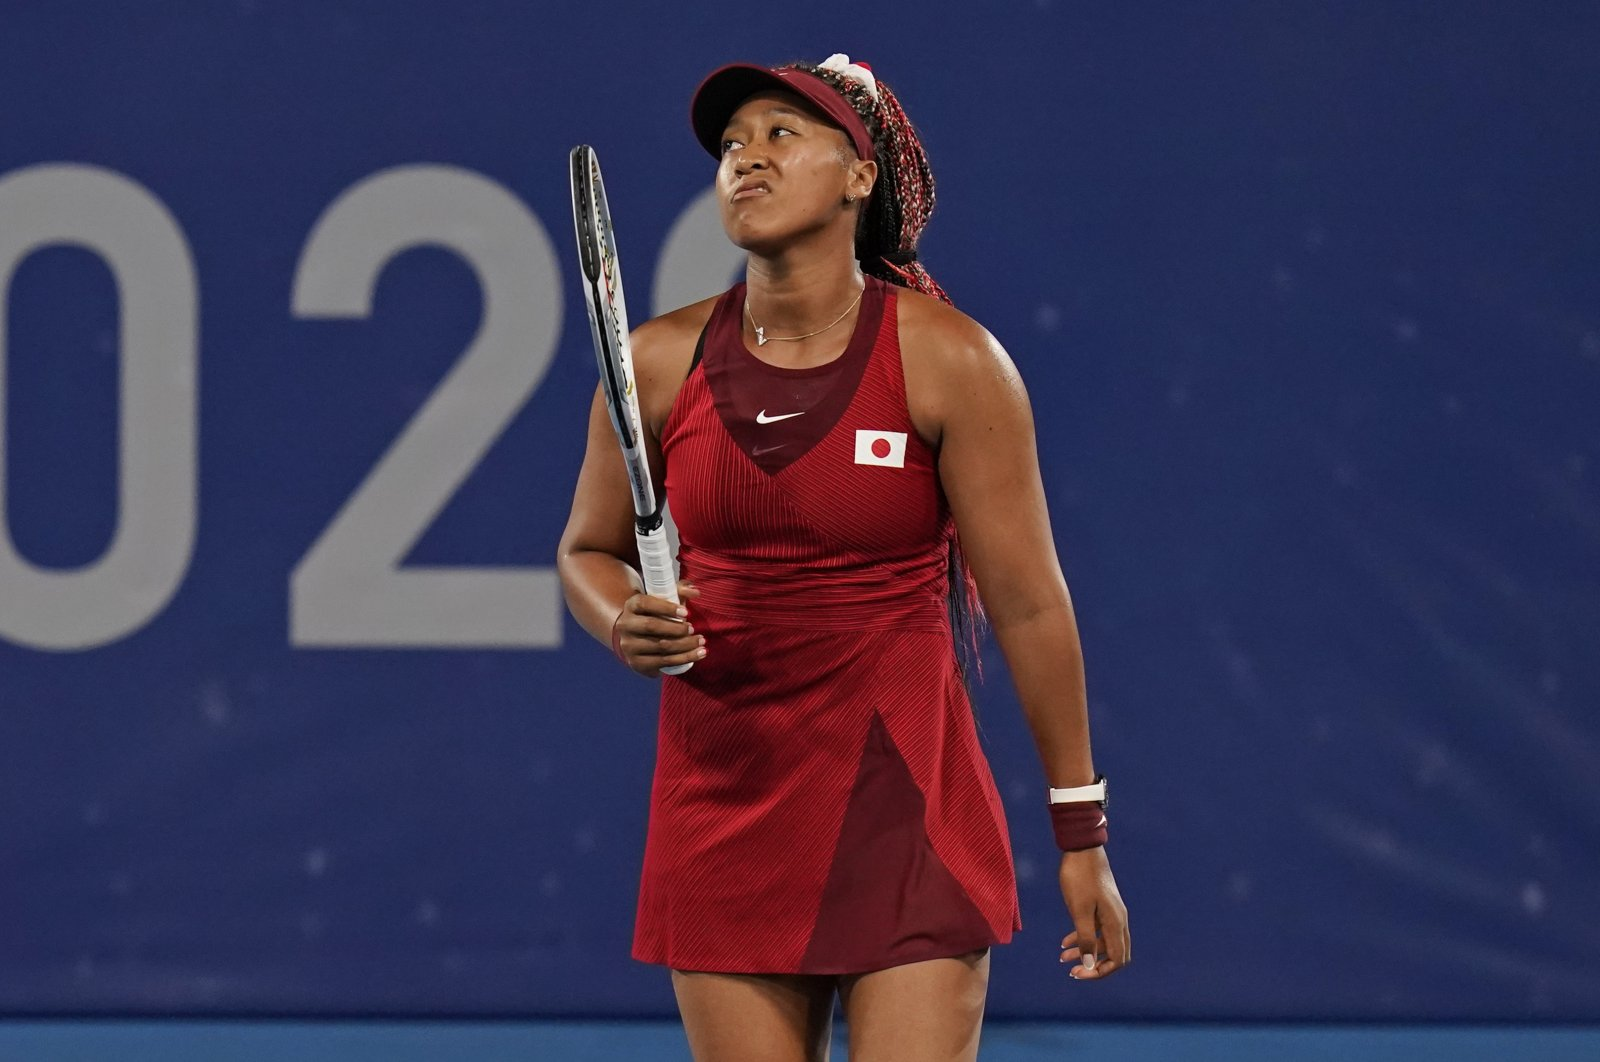 Naomi Osaka, of Japan, reacts after losing a point to Marketa Vondrousova, of the Czech Republic, during the third round of the tennis competition at the 2020 Summer Olympics, in Tokyo, Japan, July 27, 2021. (AP Photo)